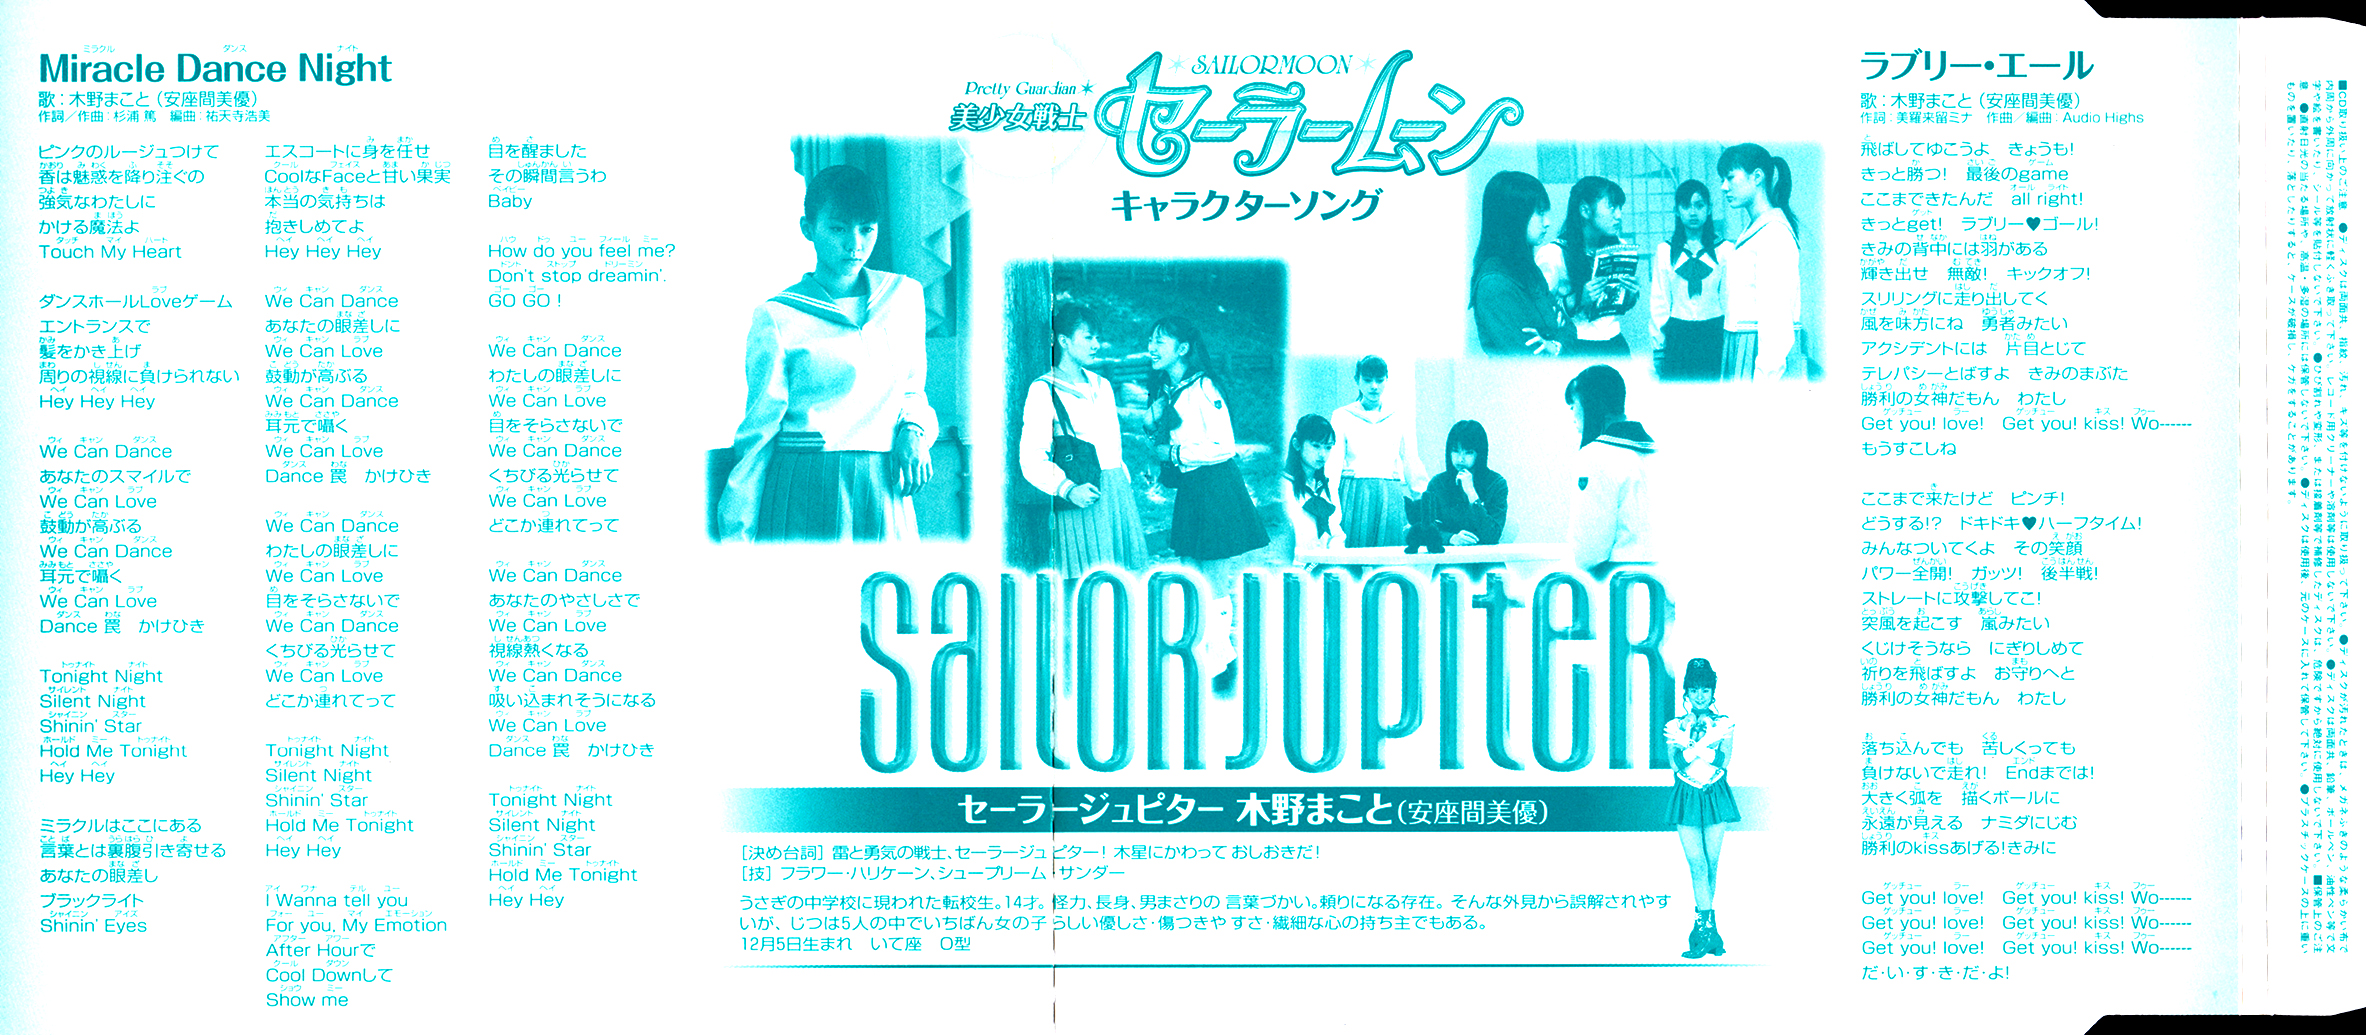 Pgsm_sailor_jupiter_03